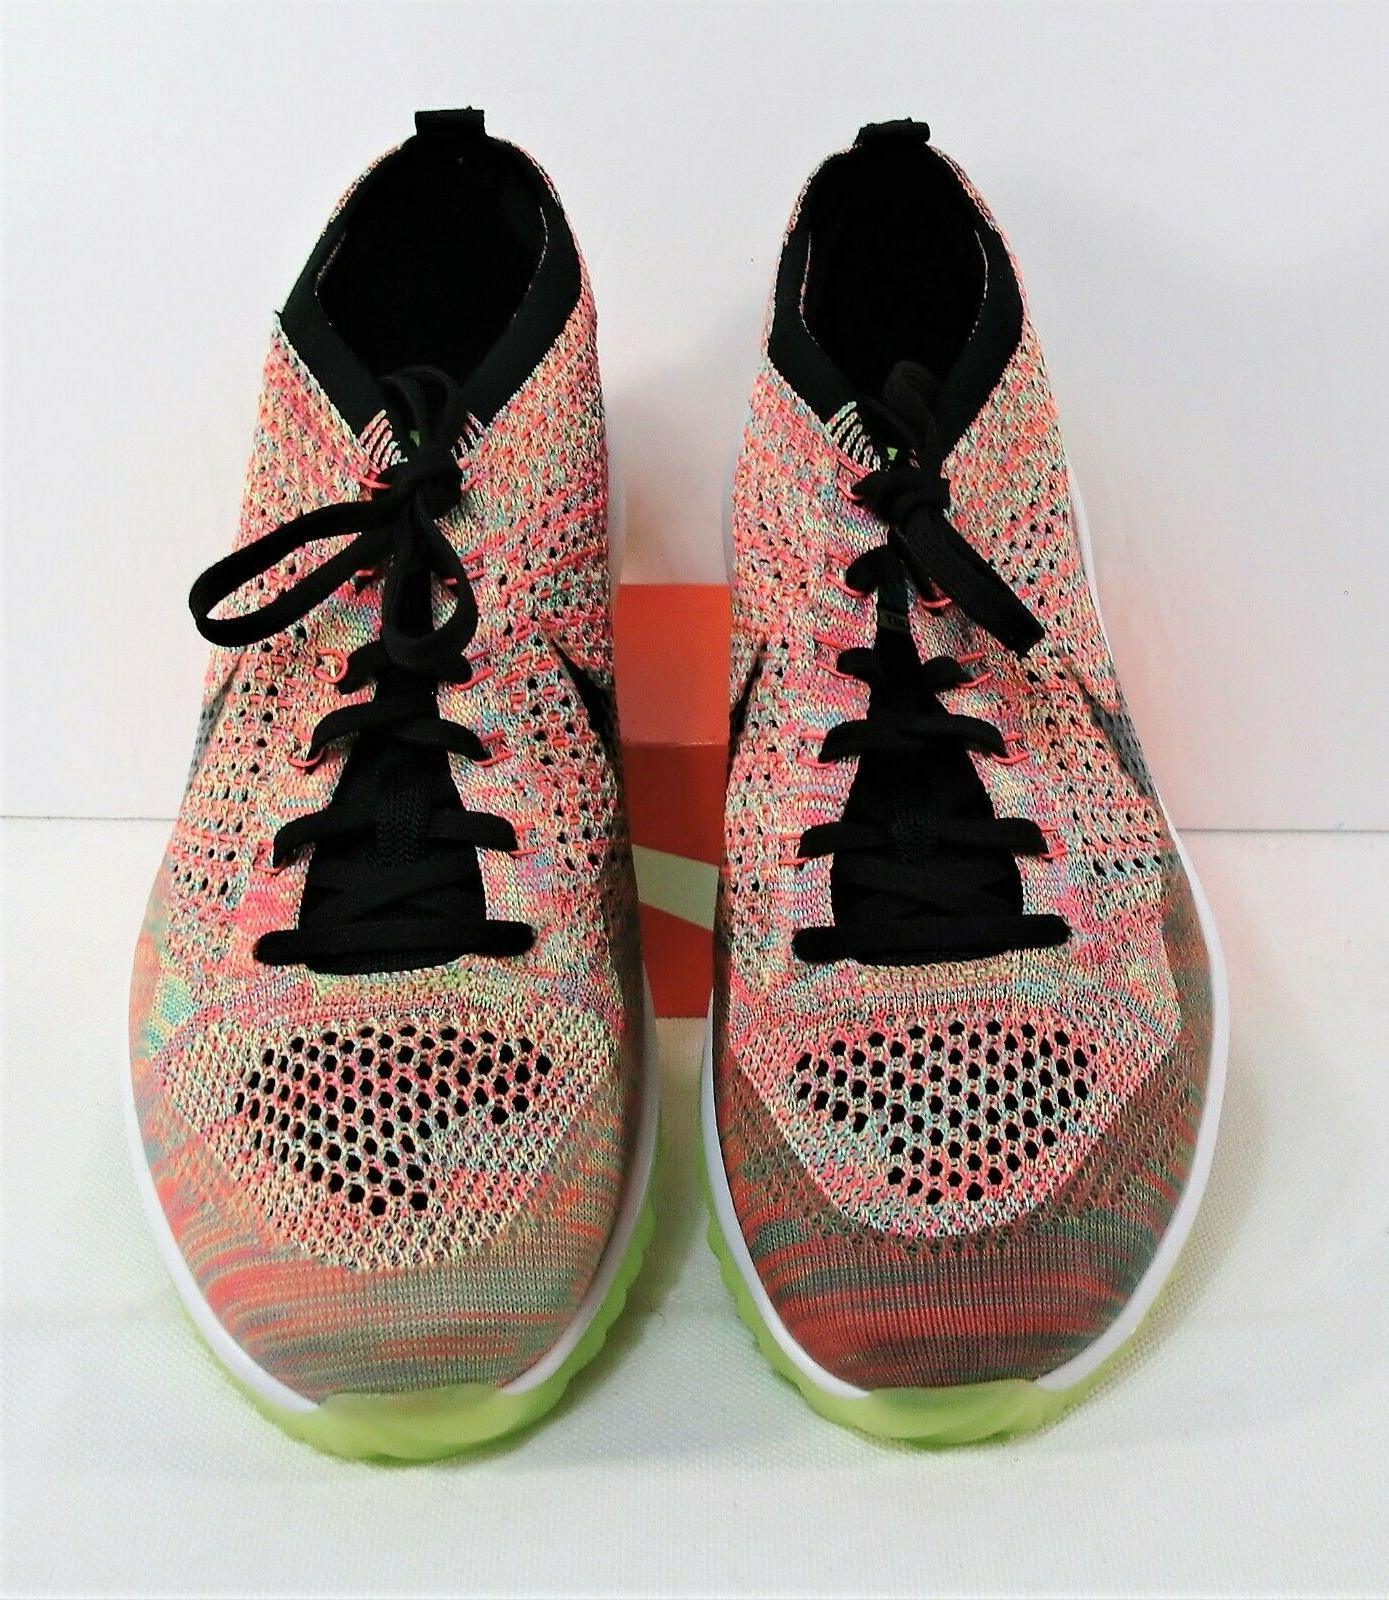 NIke Racer Spikeless Color Golf Shoes NEW 909756